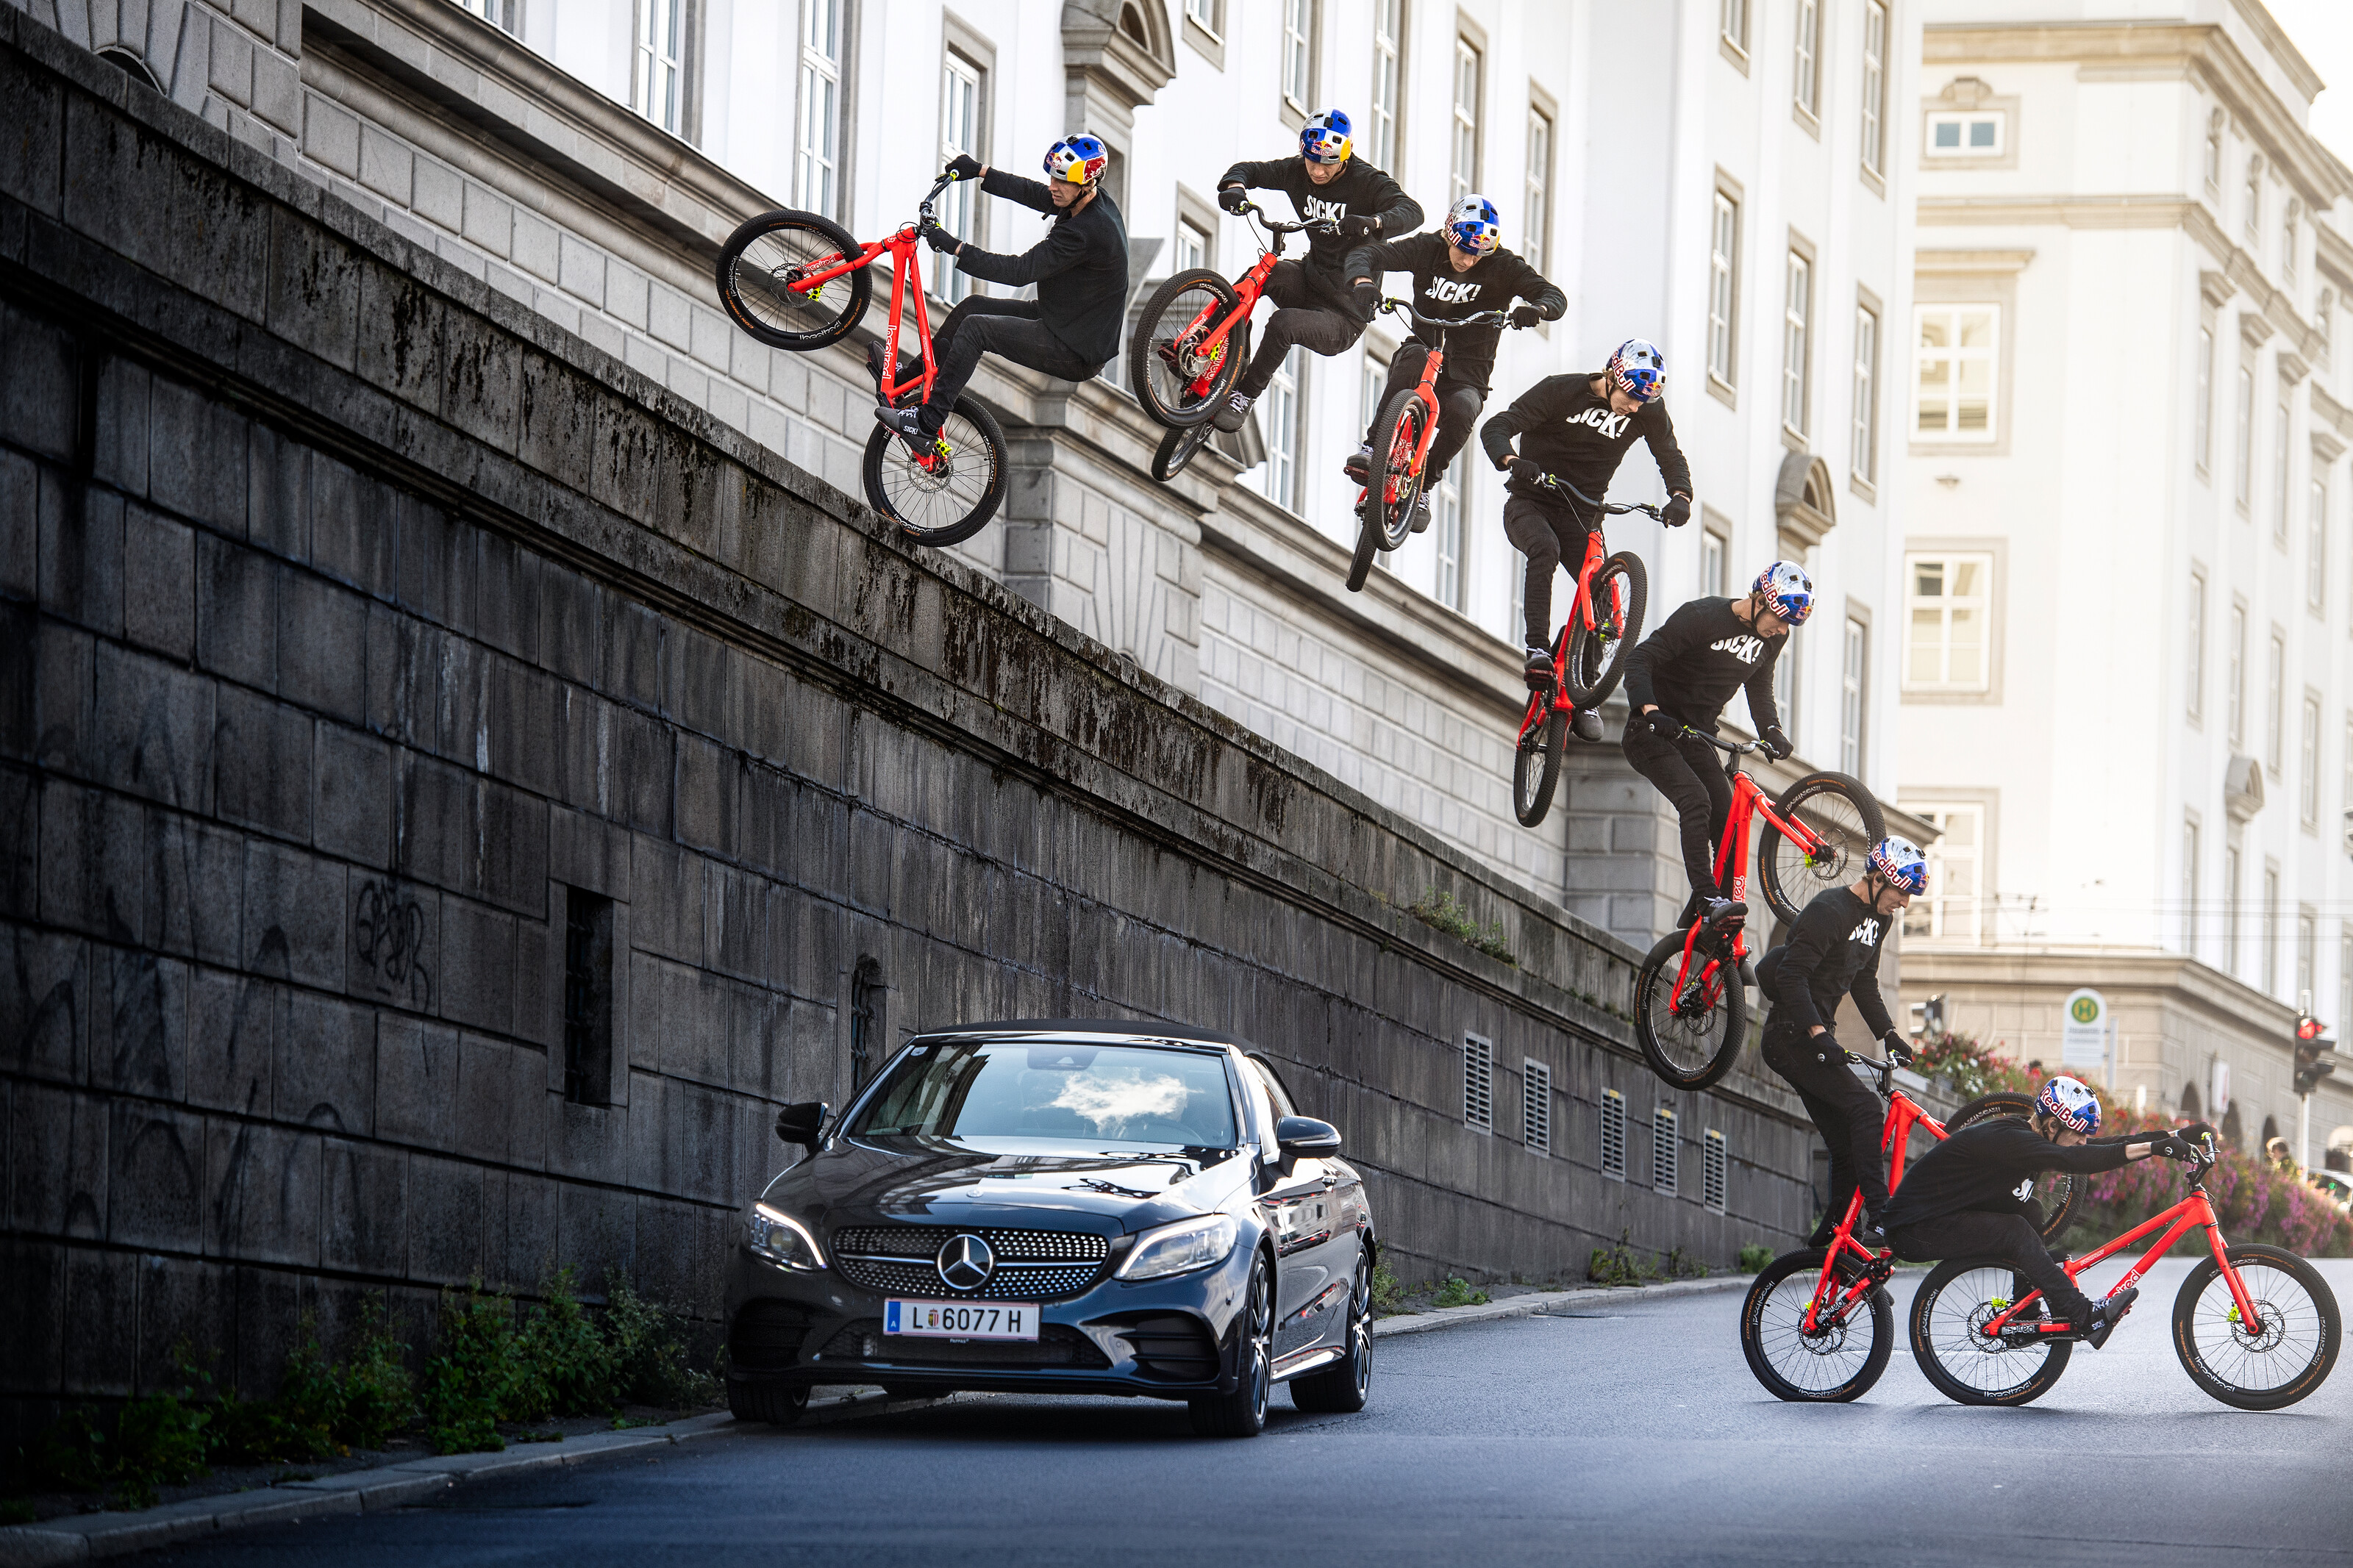 Wibmer's Law sees Austrian trials rider take big cities by storm